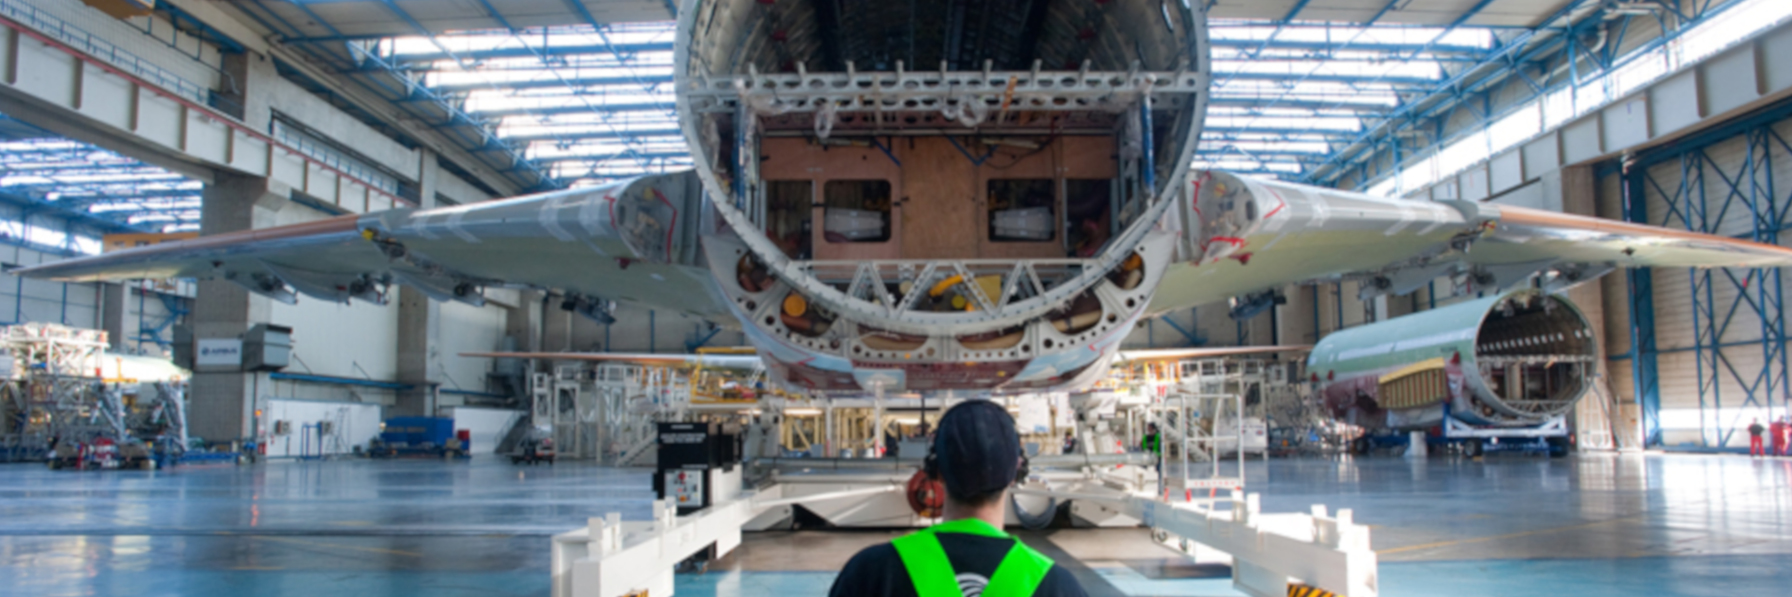 AIRBUS frame assembly manufacturing